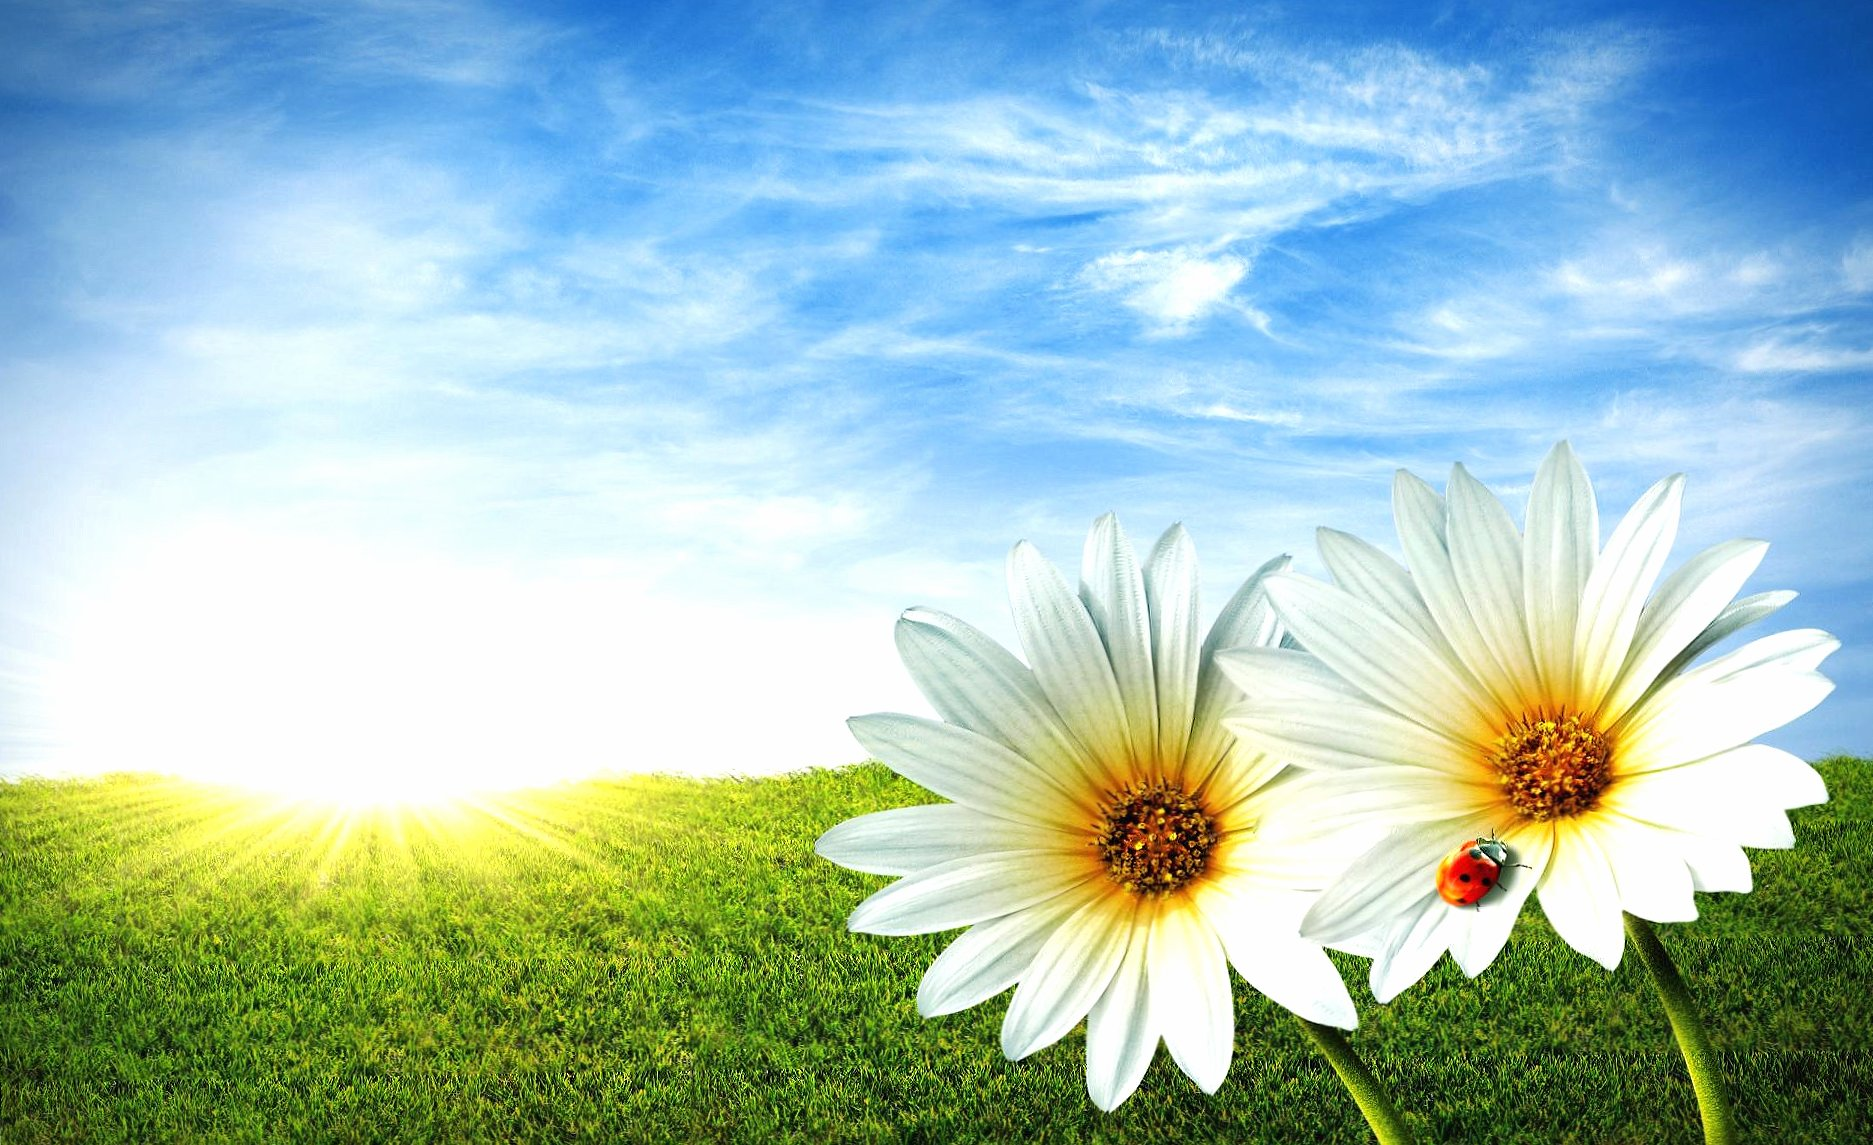 Daisy ladybug grass sky wallpapers HD quality